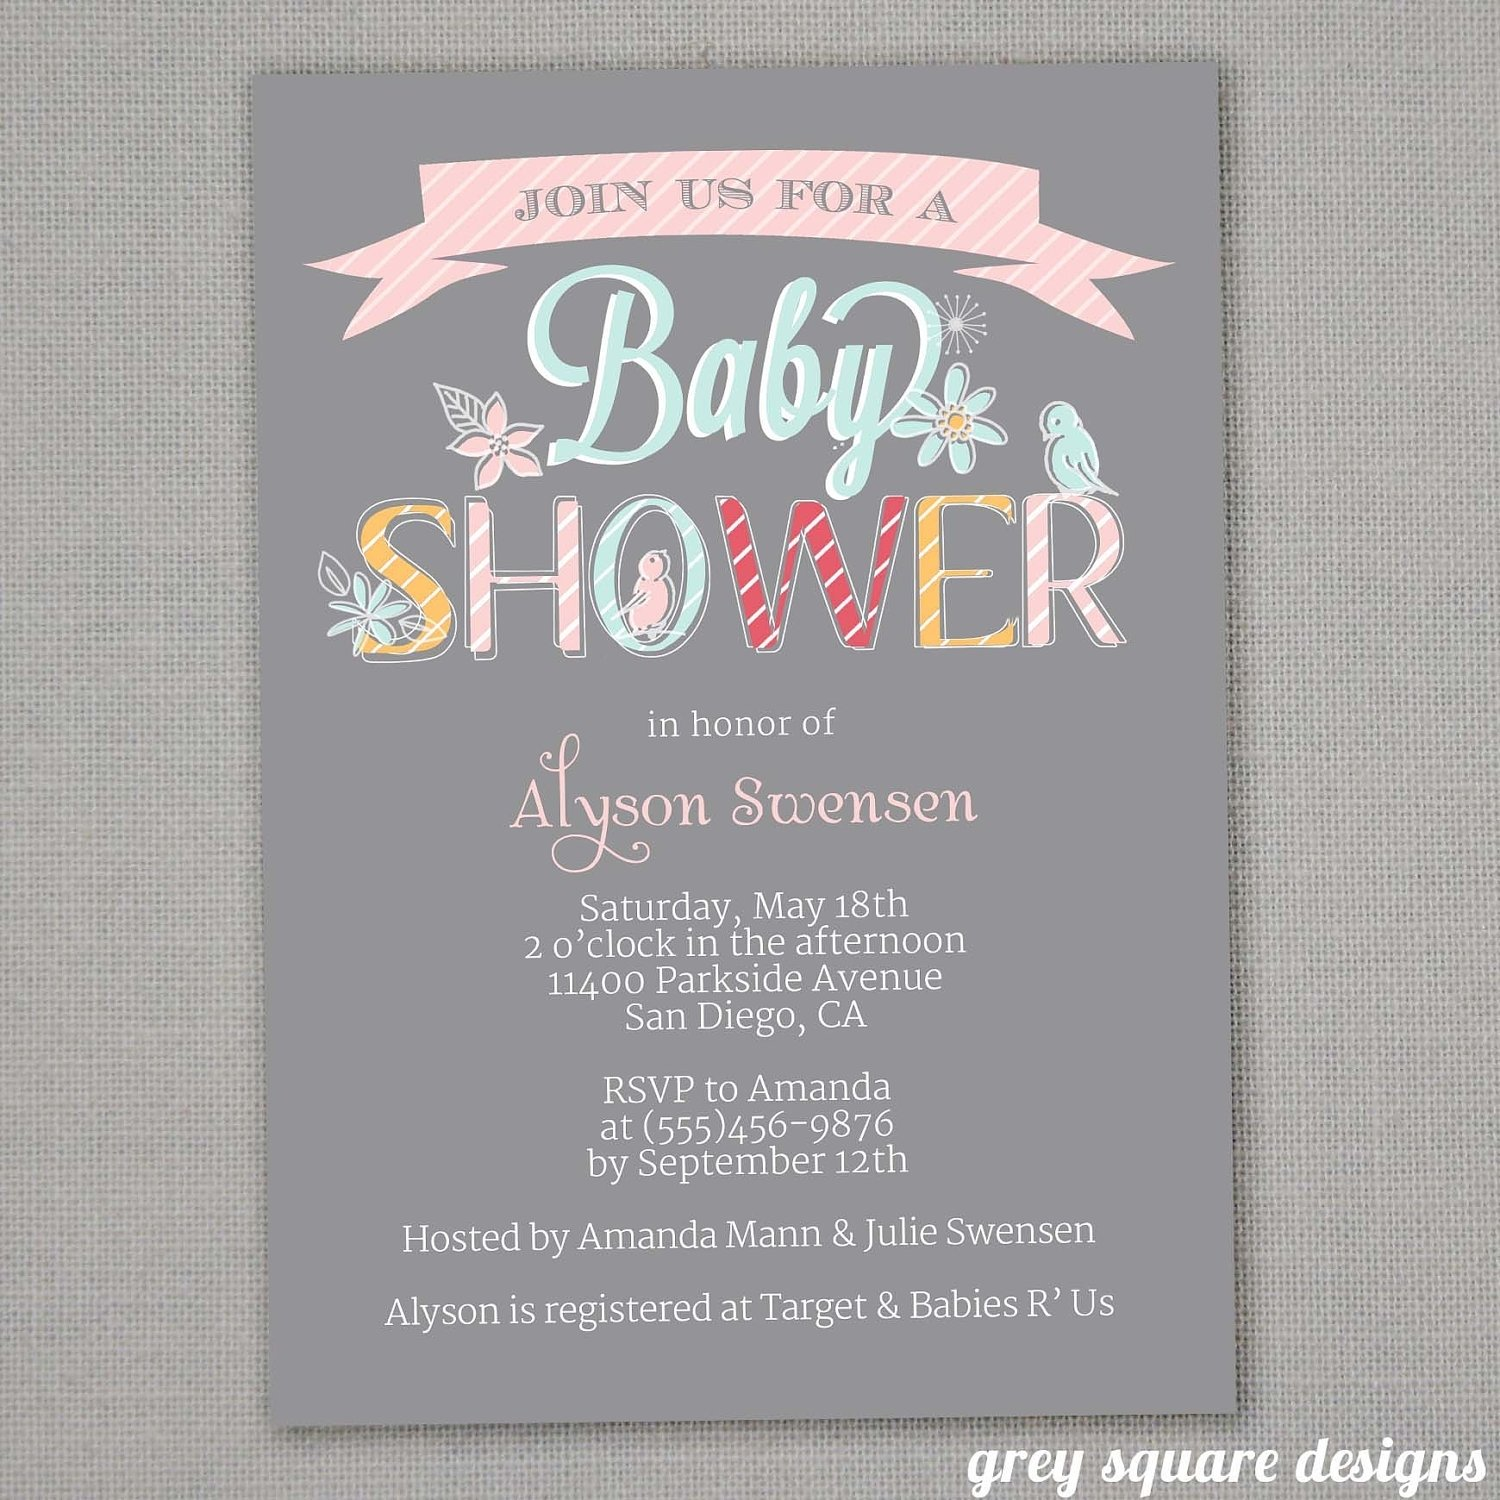 10 Fantastic Baby Shower Wishing Well Ideas photo the stationery place baby image 2020